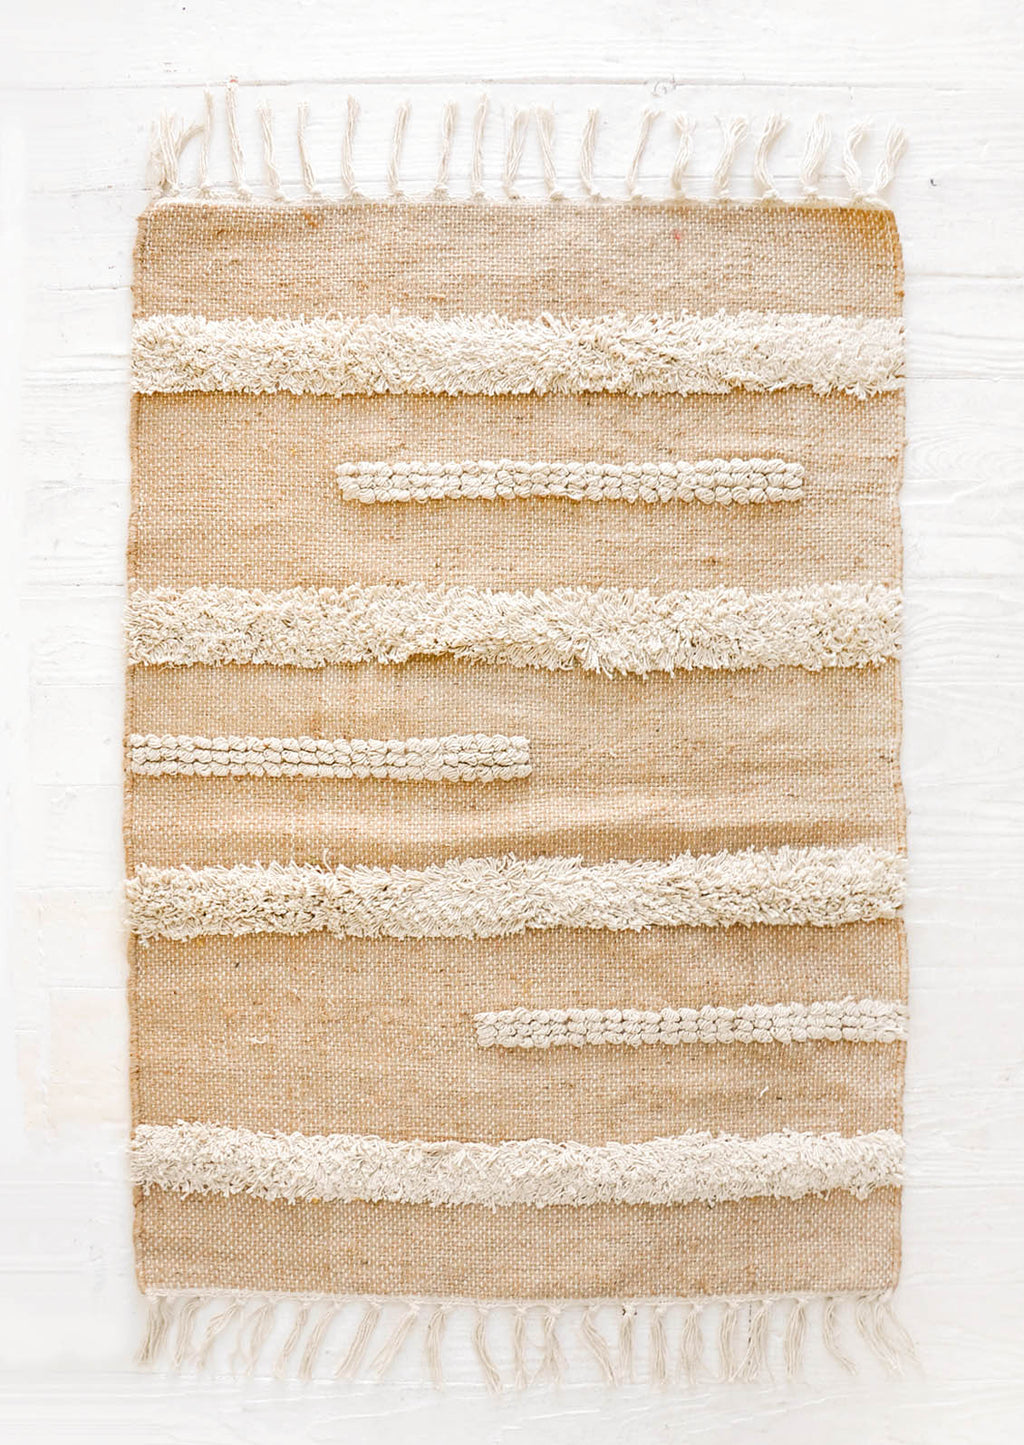 1: Flatweave jute rug in tan with fluffy, raised stripe detailing in ivory, featuring tasseled edges.